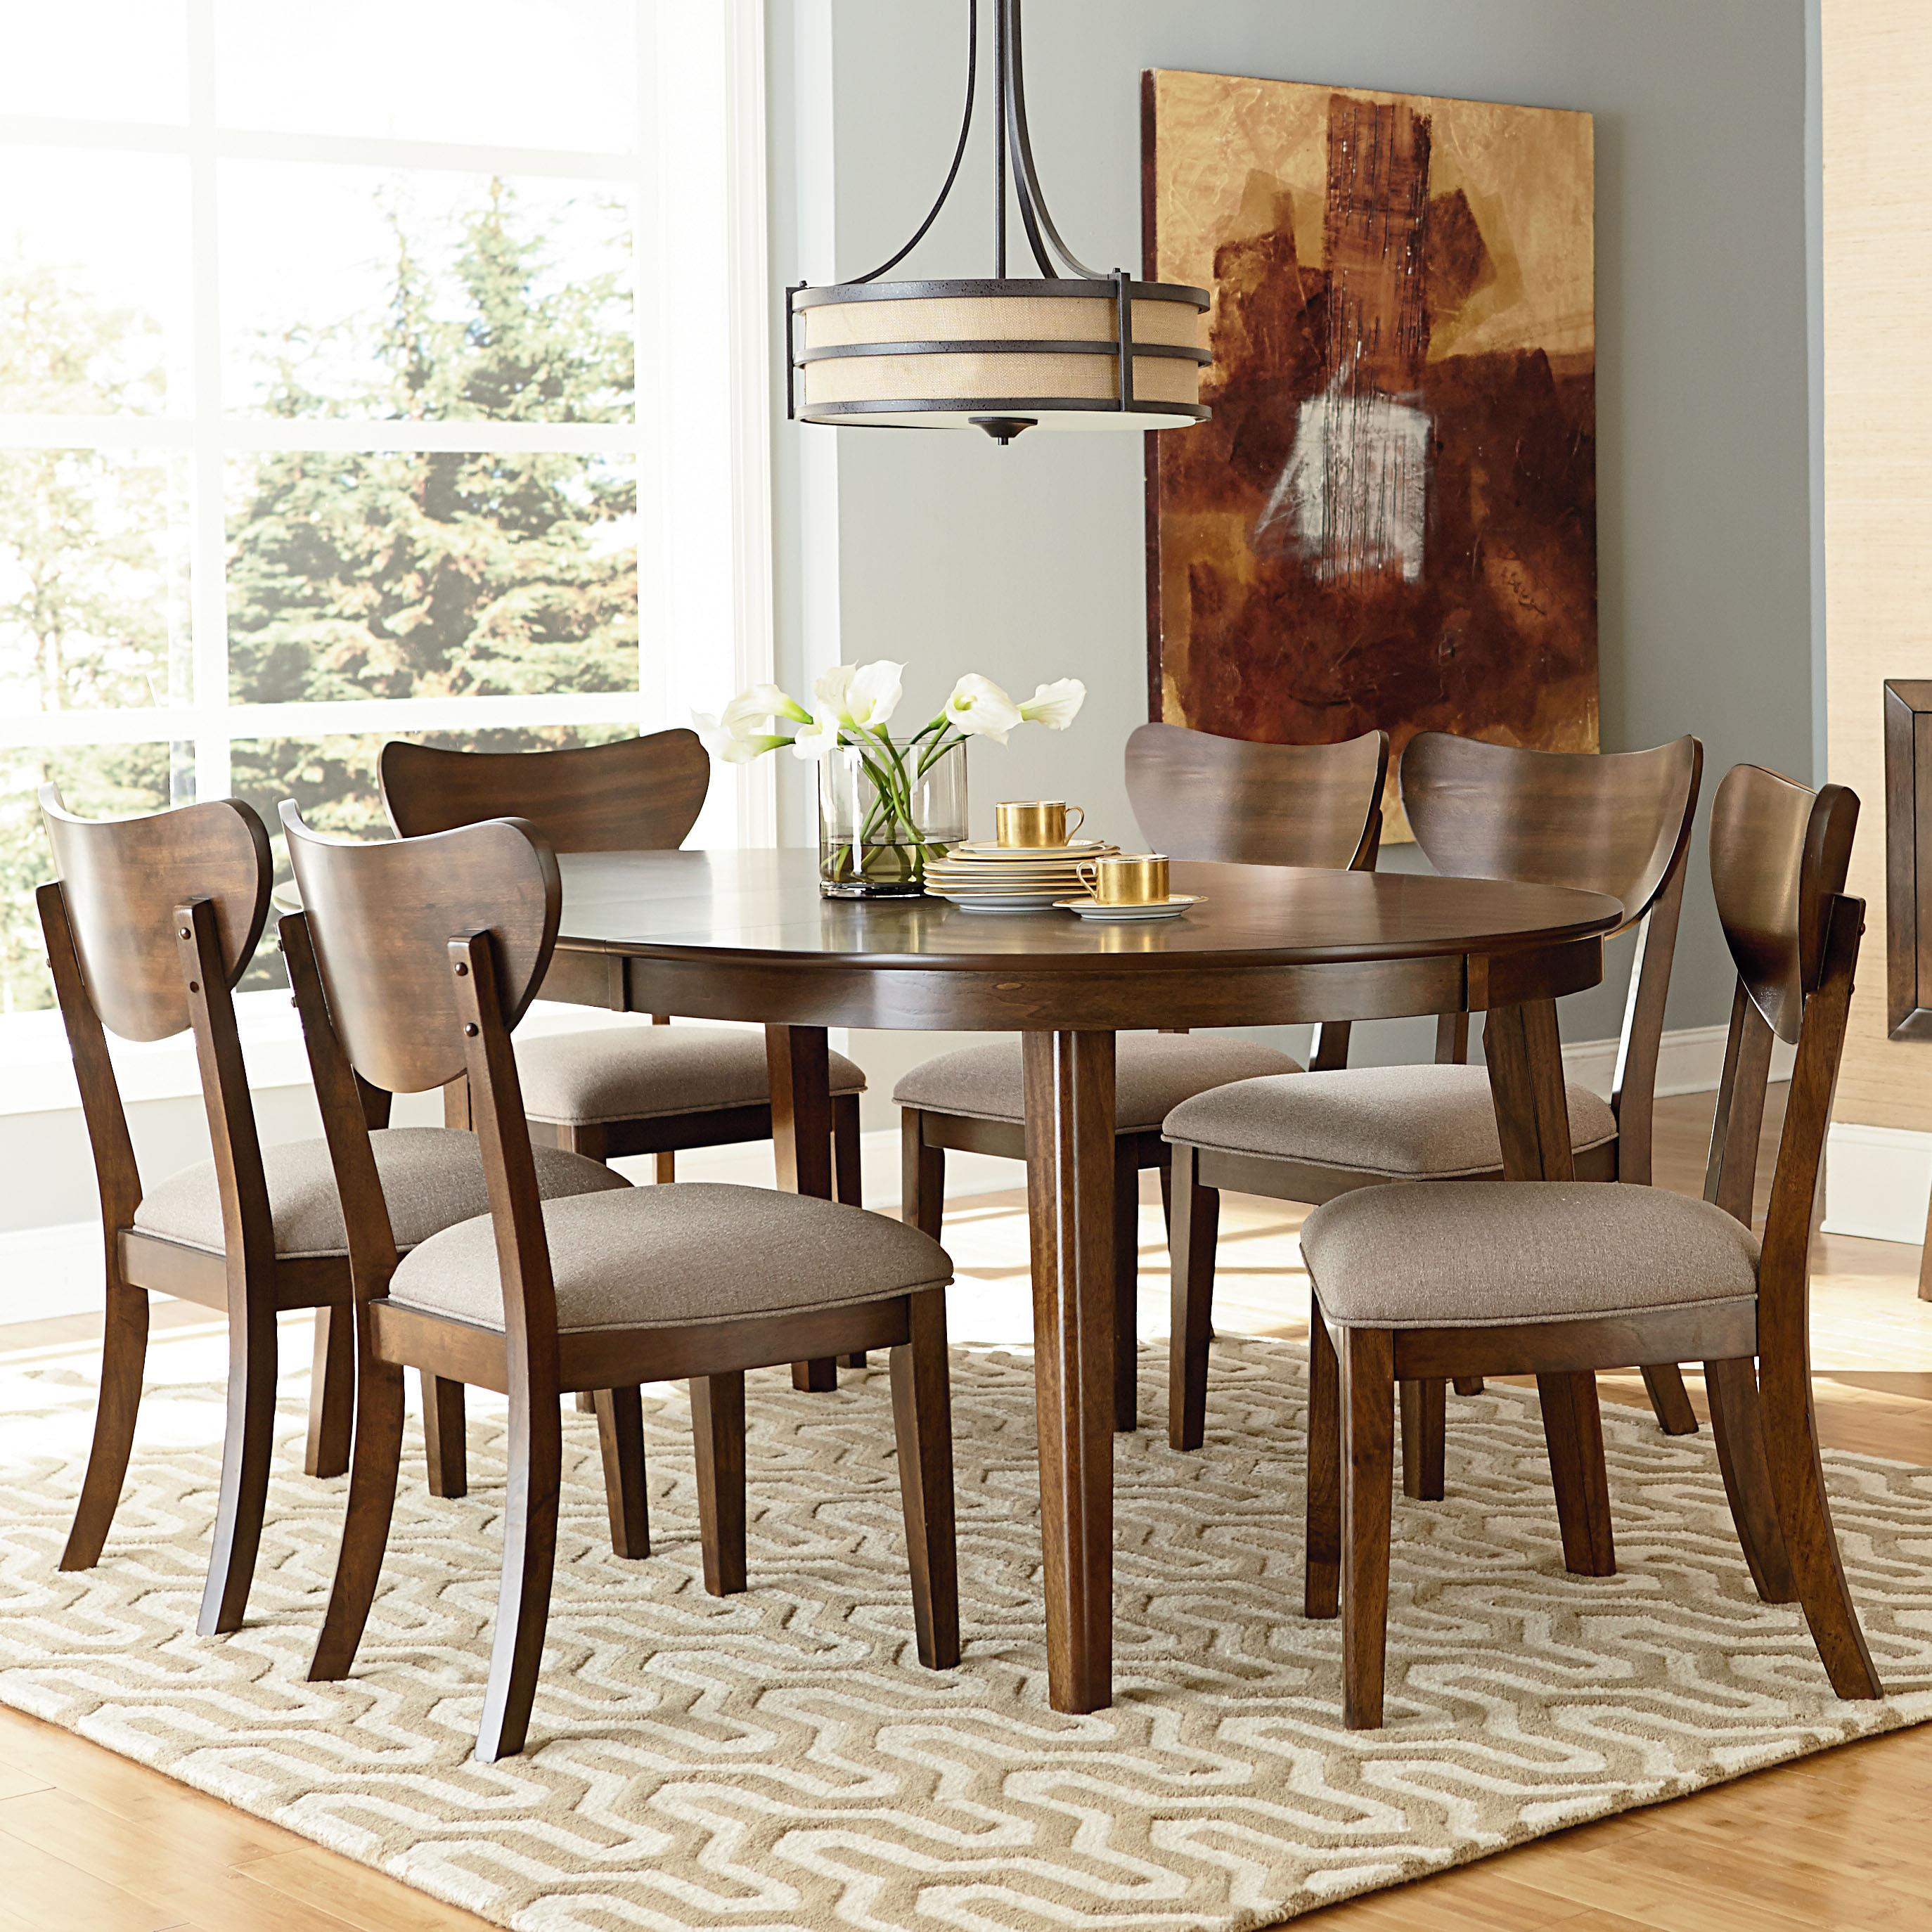 Standard Furniture Roxbury 7 Piece Oval Table & Chair Set - Item Number: 16201+6x204